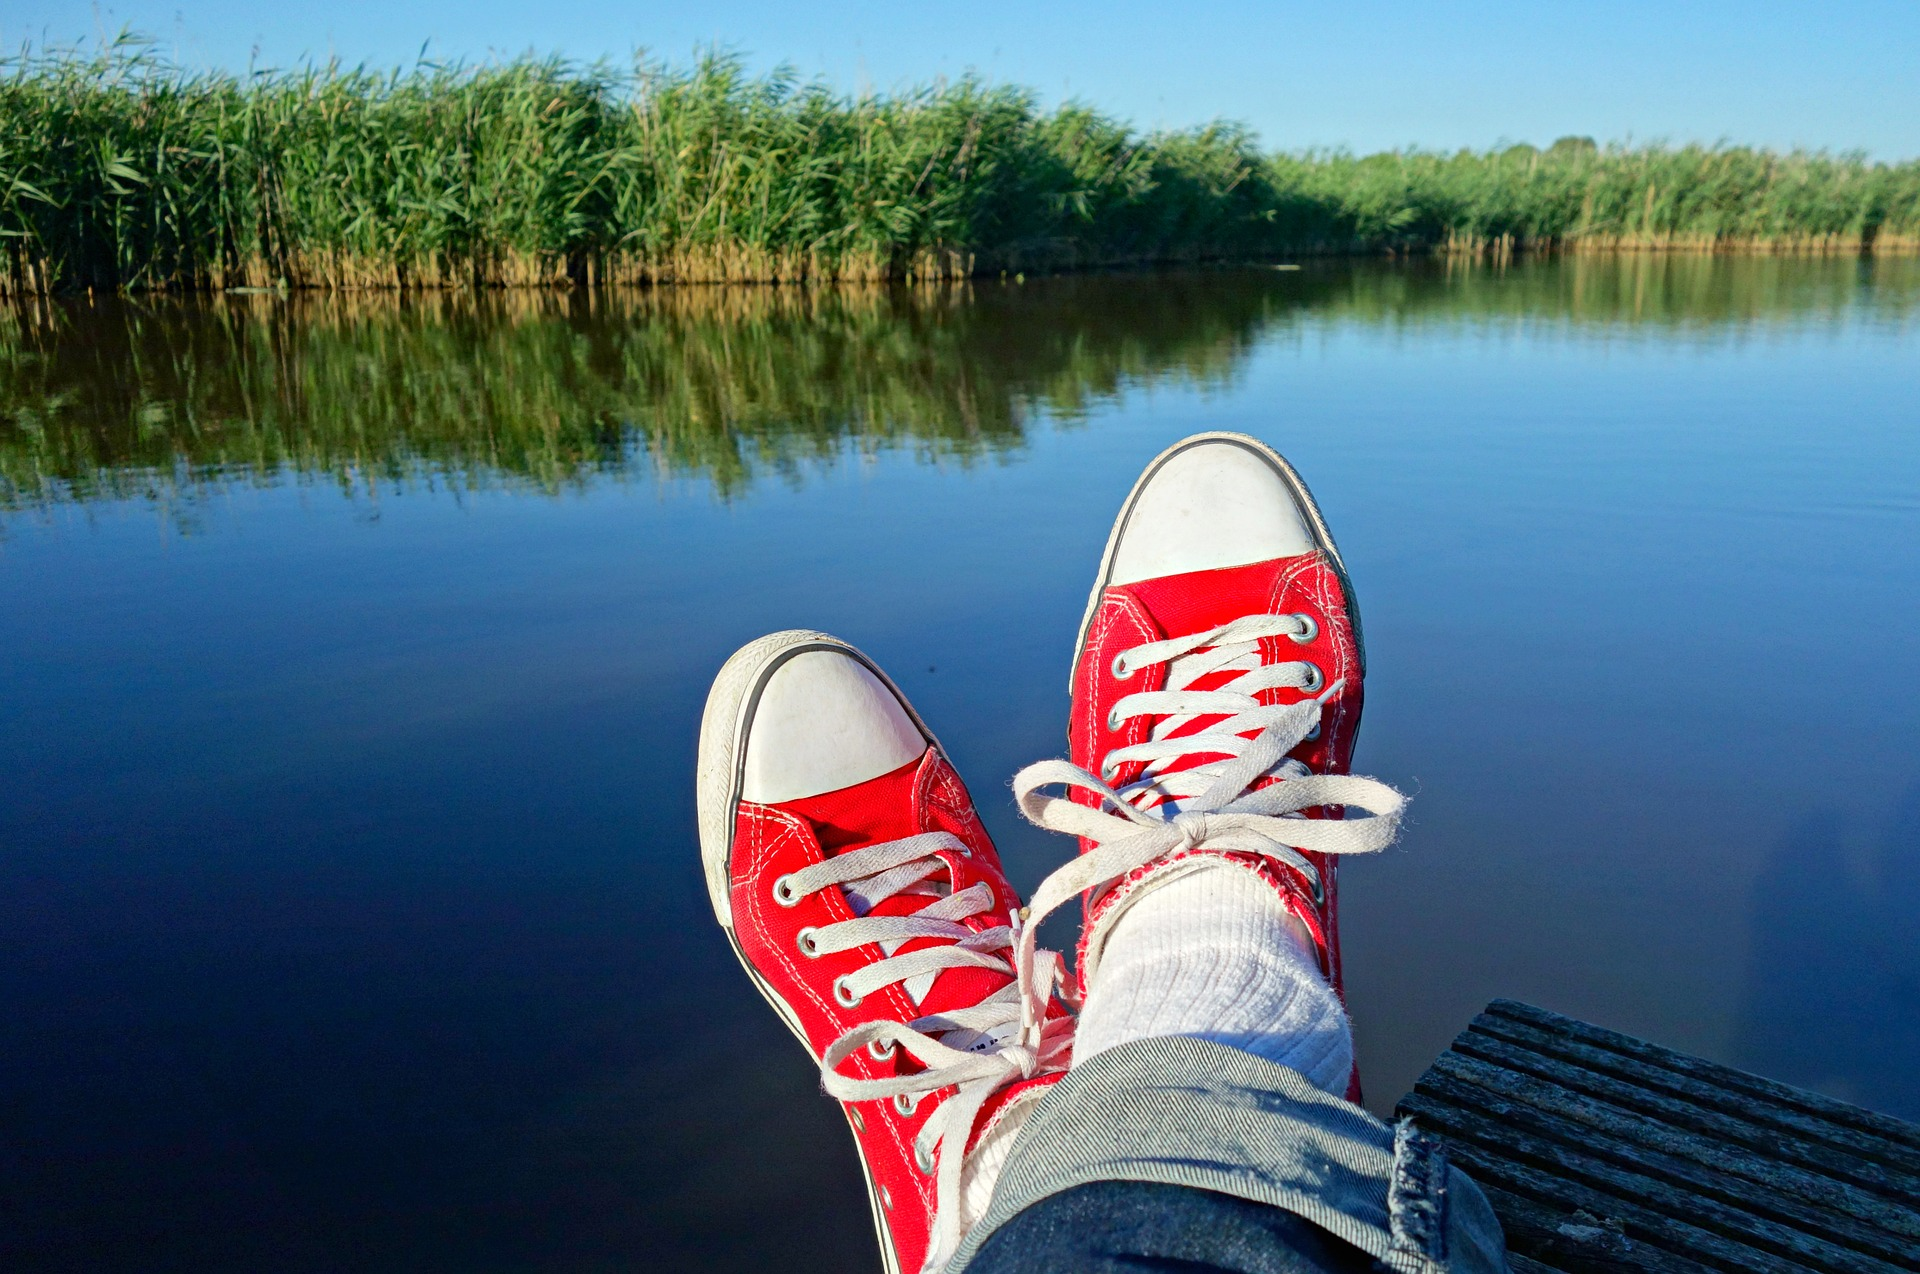 Feet on lake (taking break)